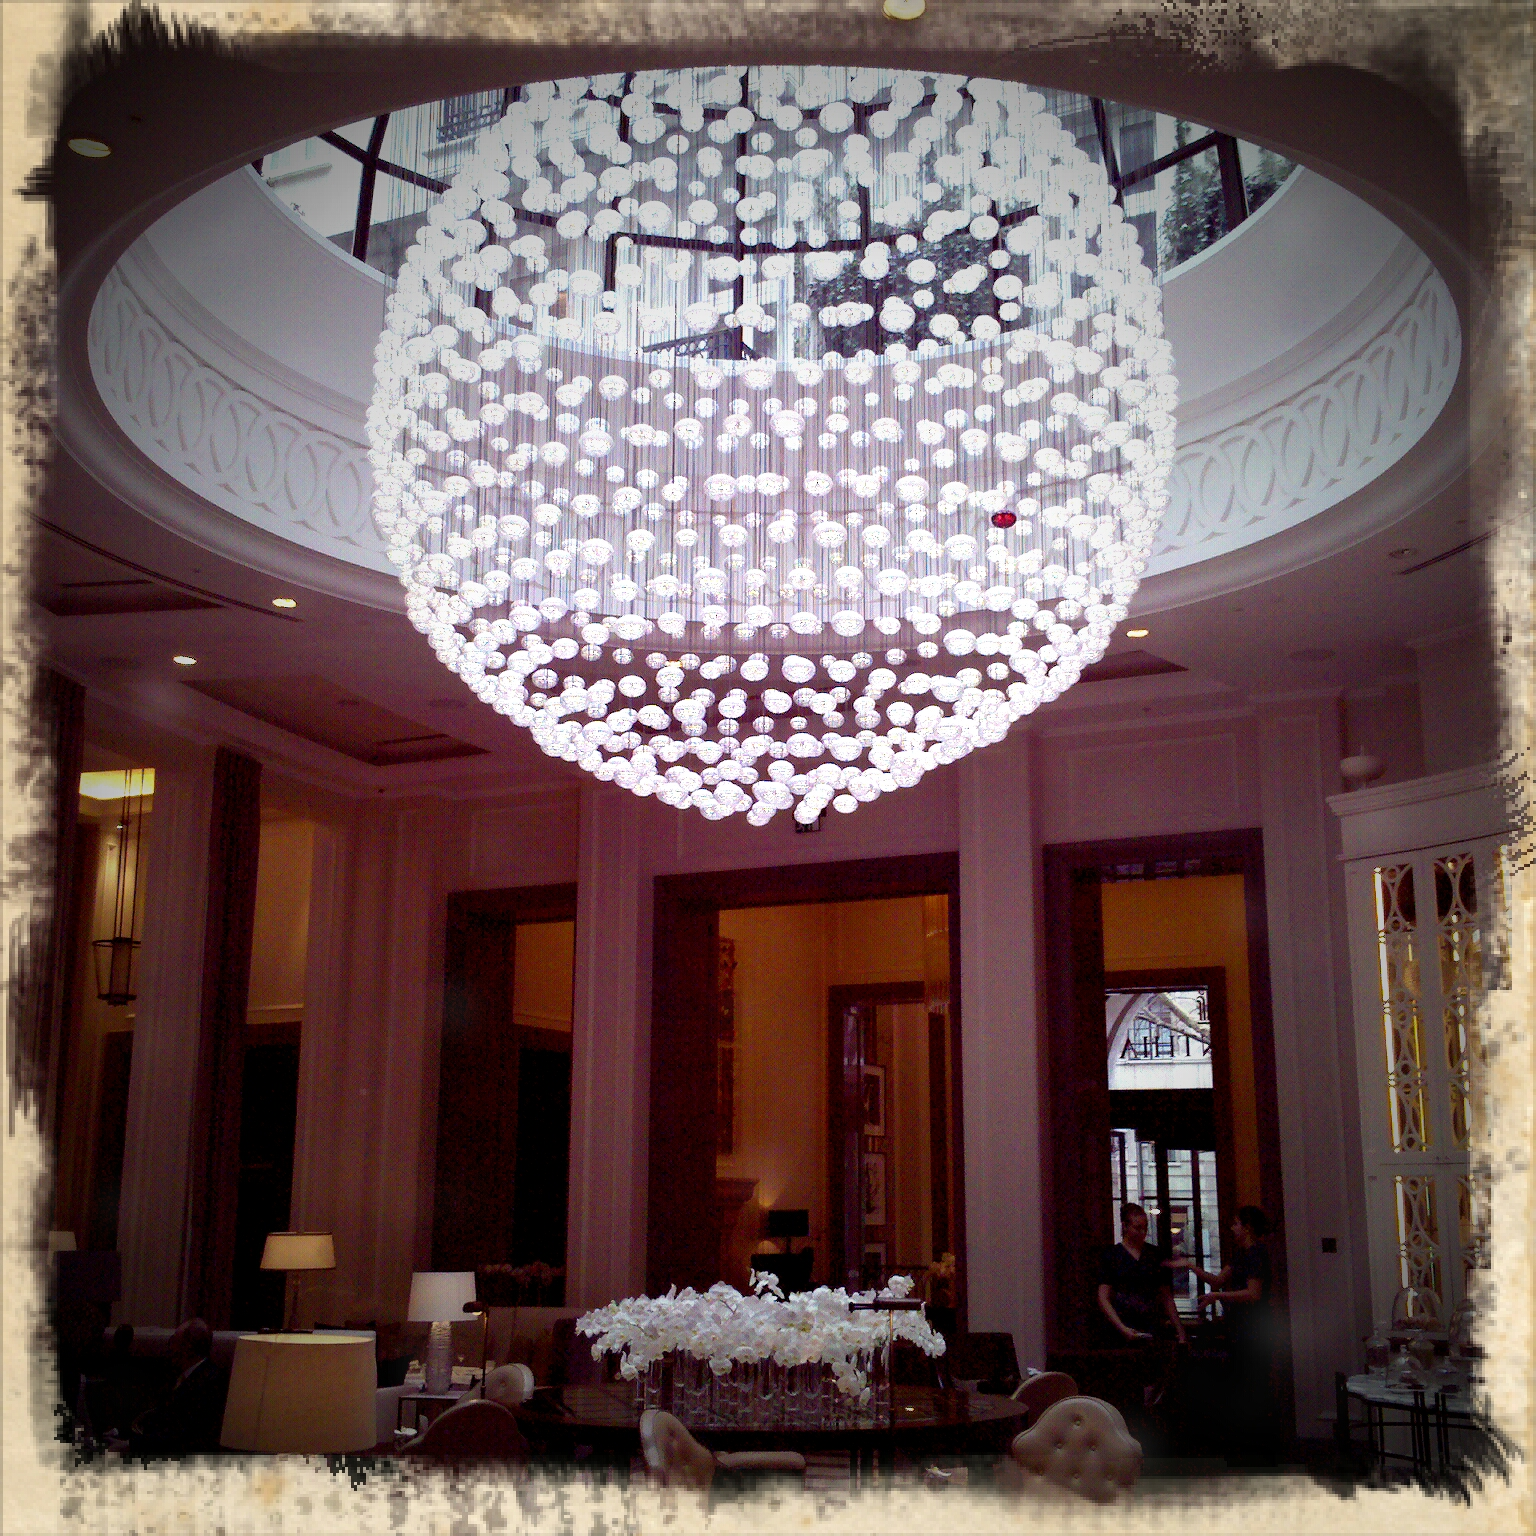 Small Globe Chandelier Over Dining Room